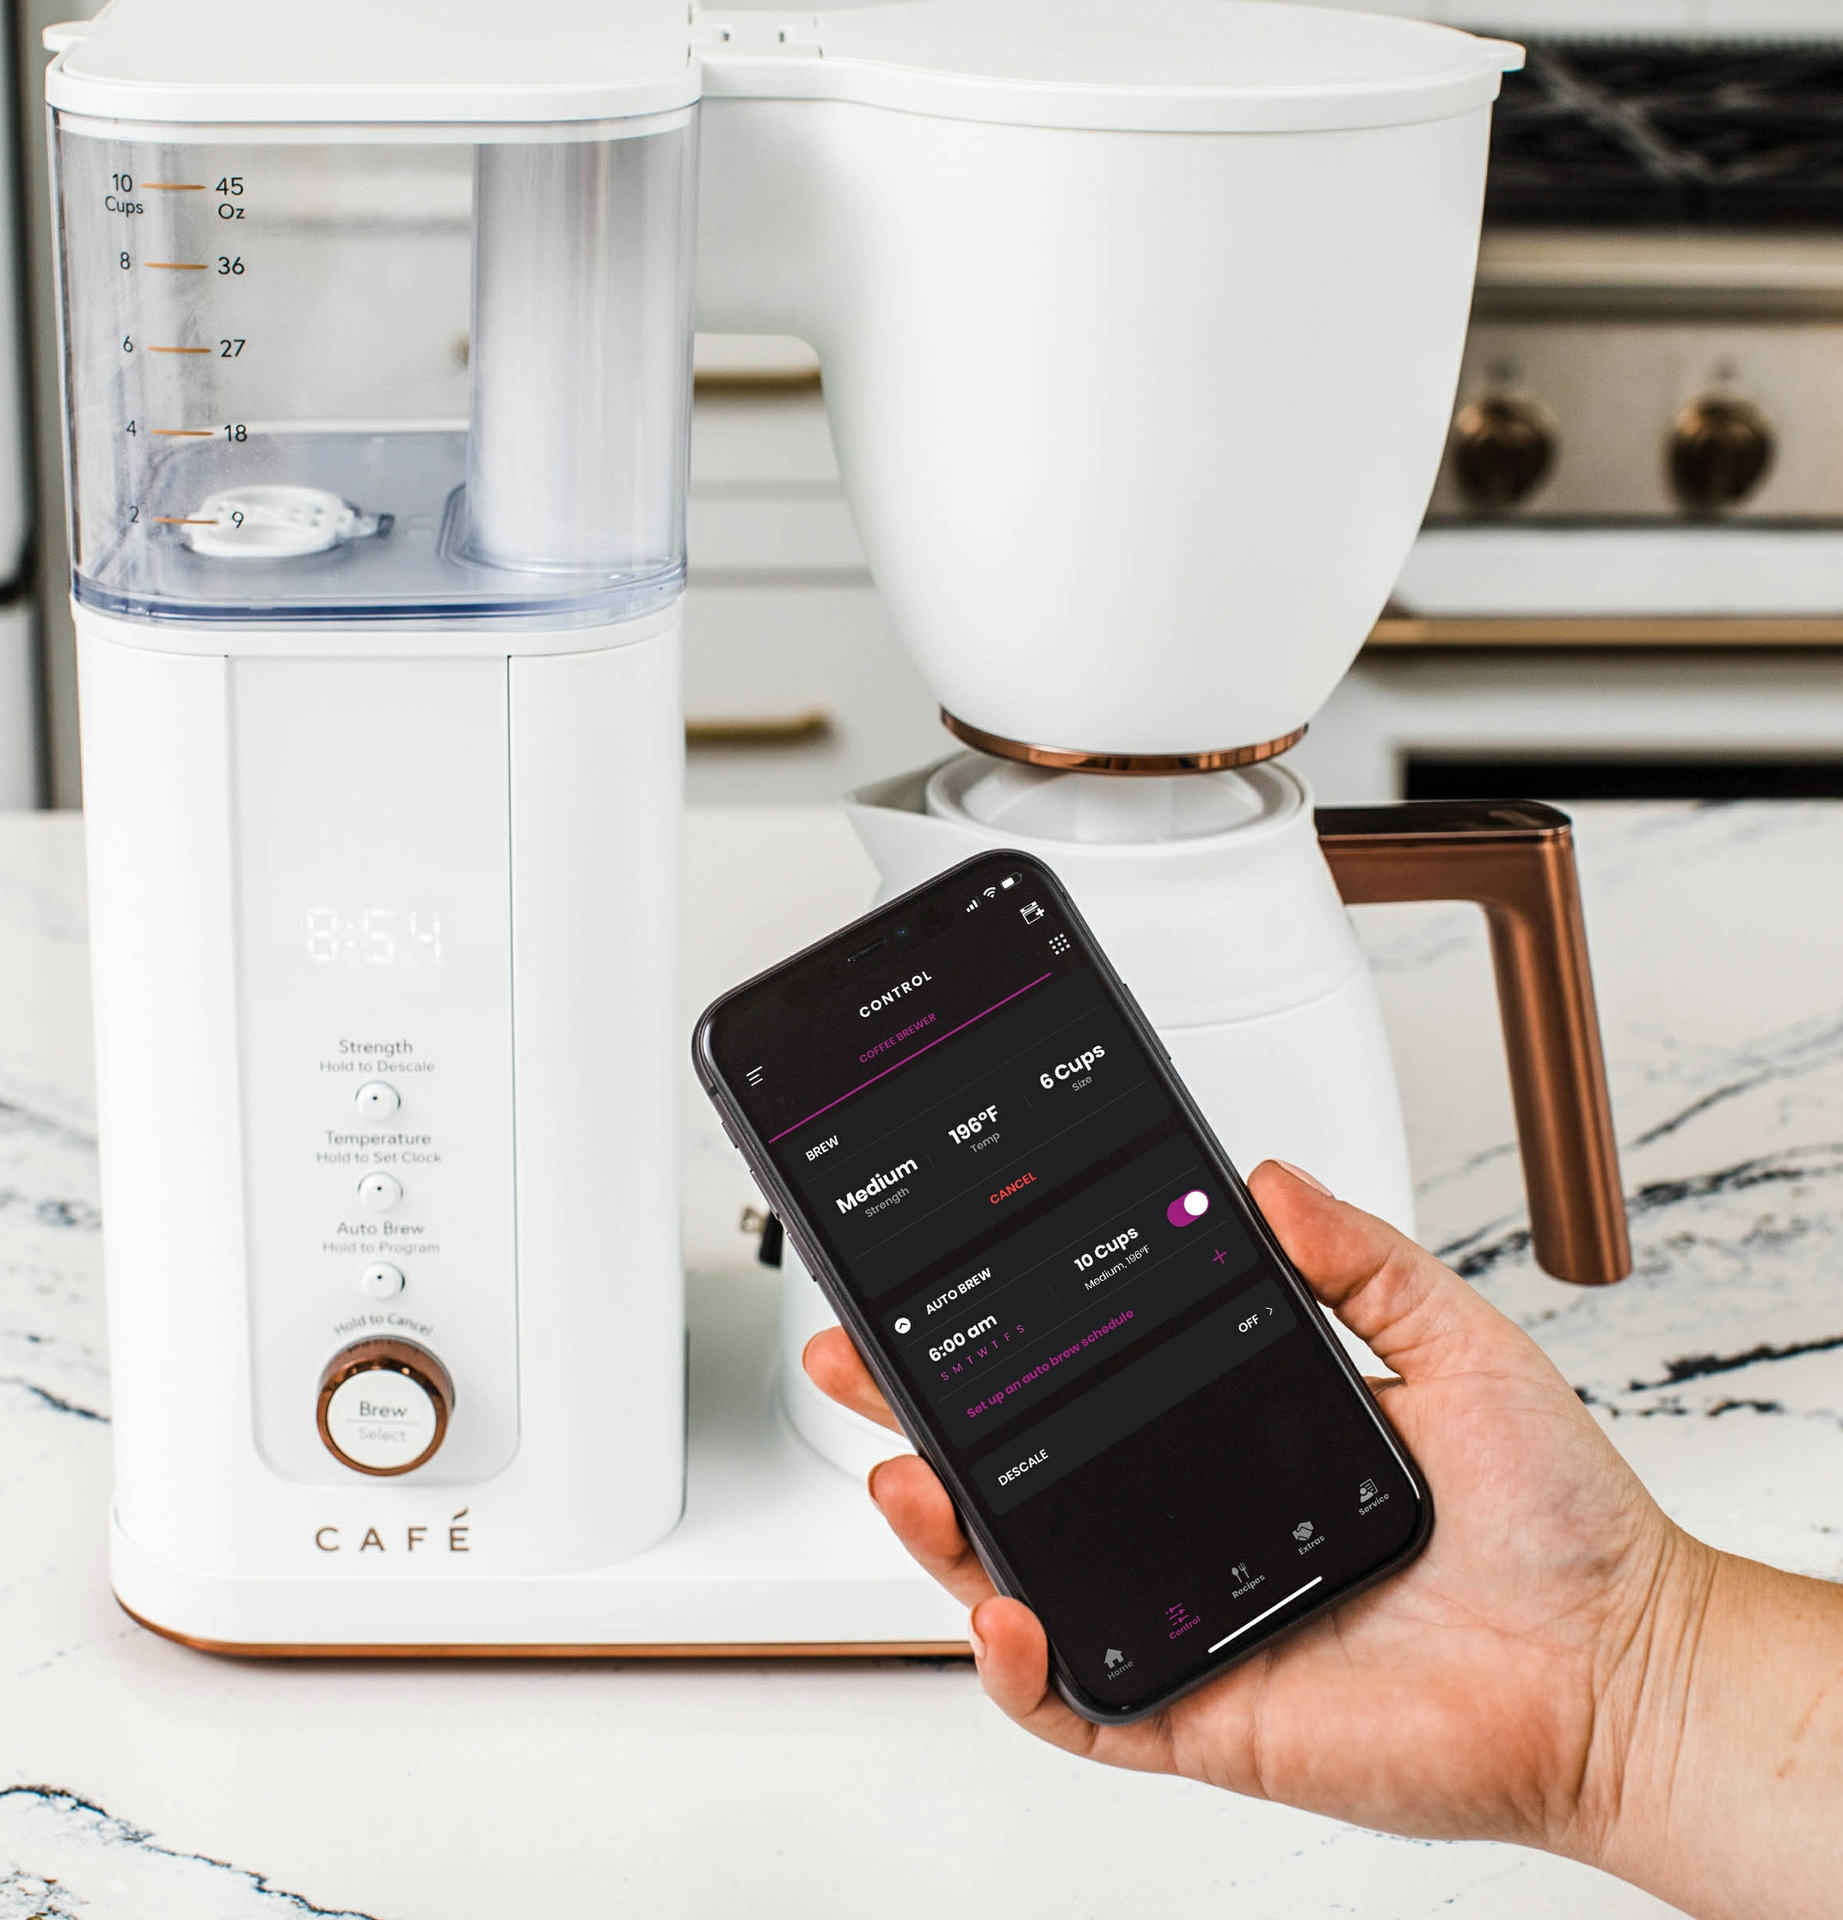 The CAFÉ™ Specialty Drip Coffee Maker Offers Built-In WiFi and a Range of Smart, User-Friendly Features